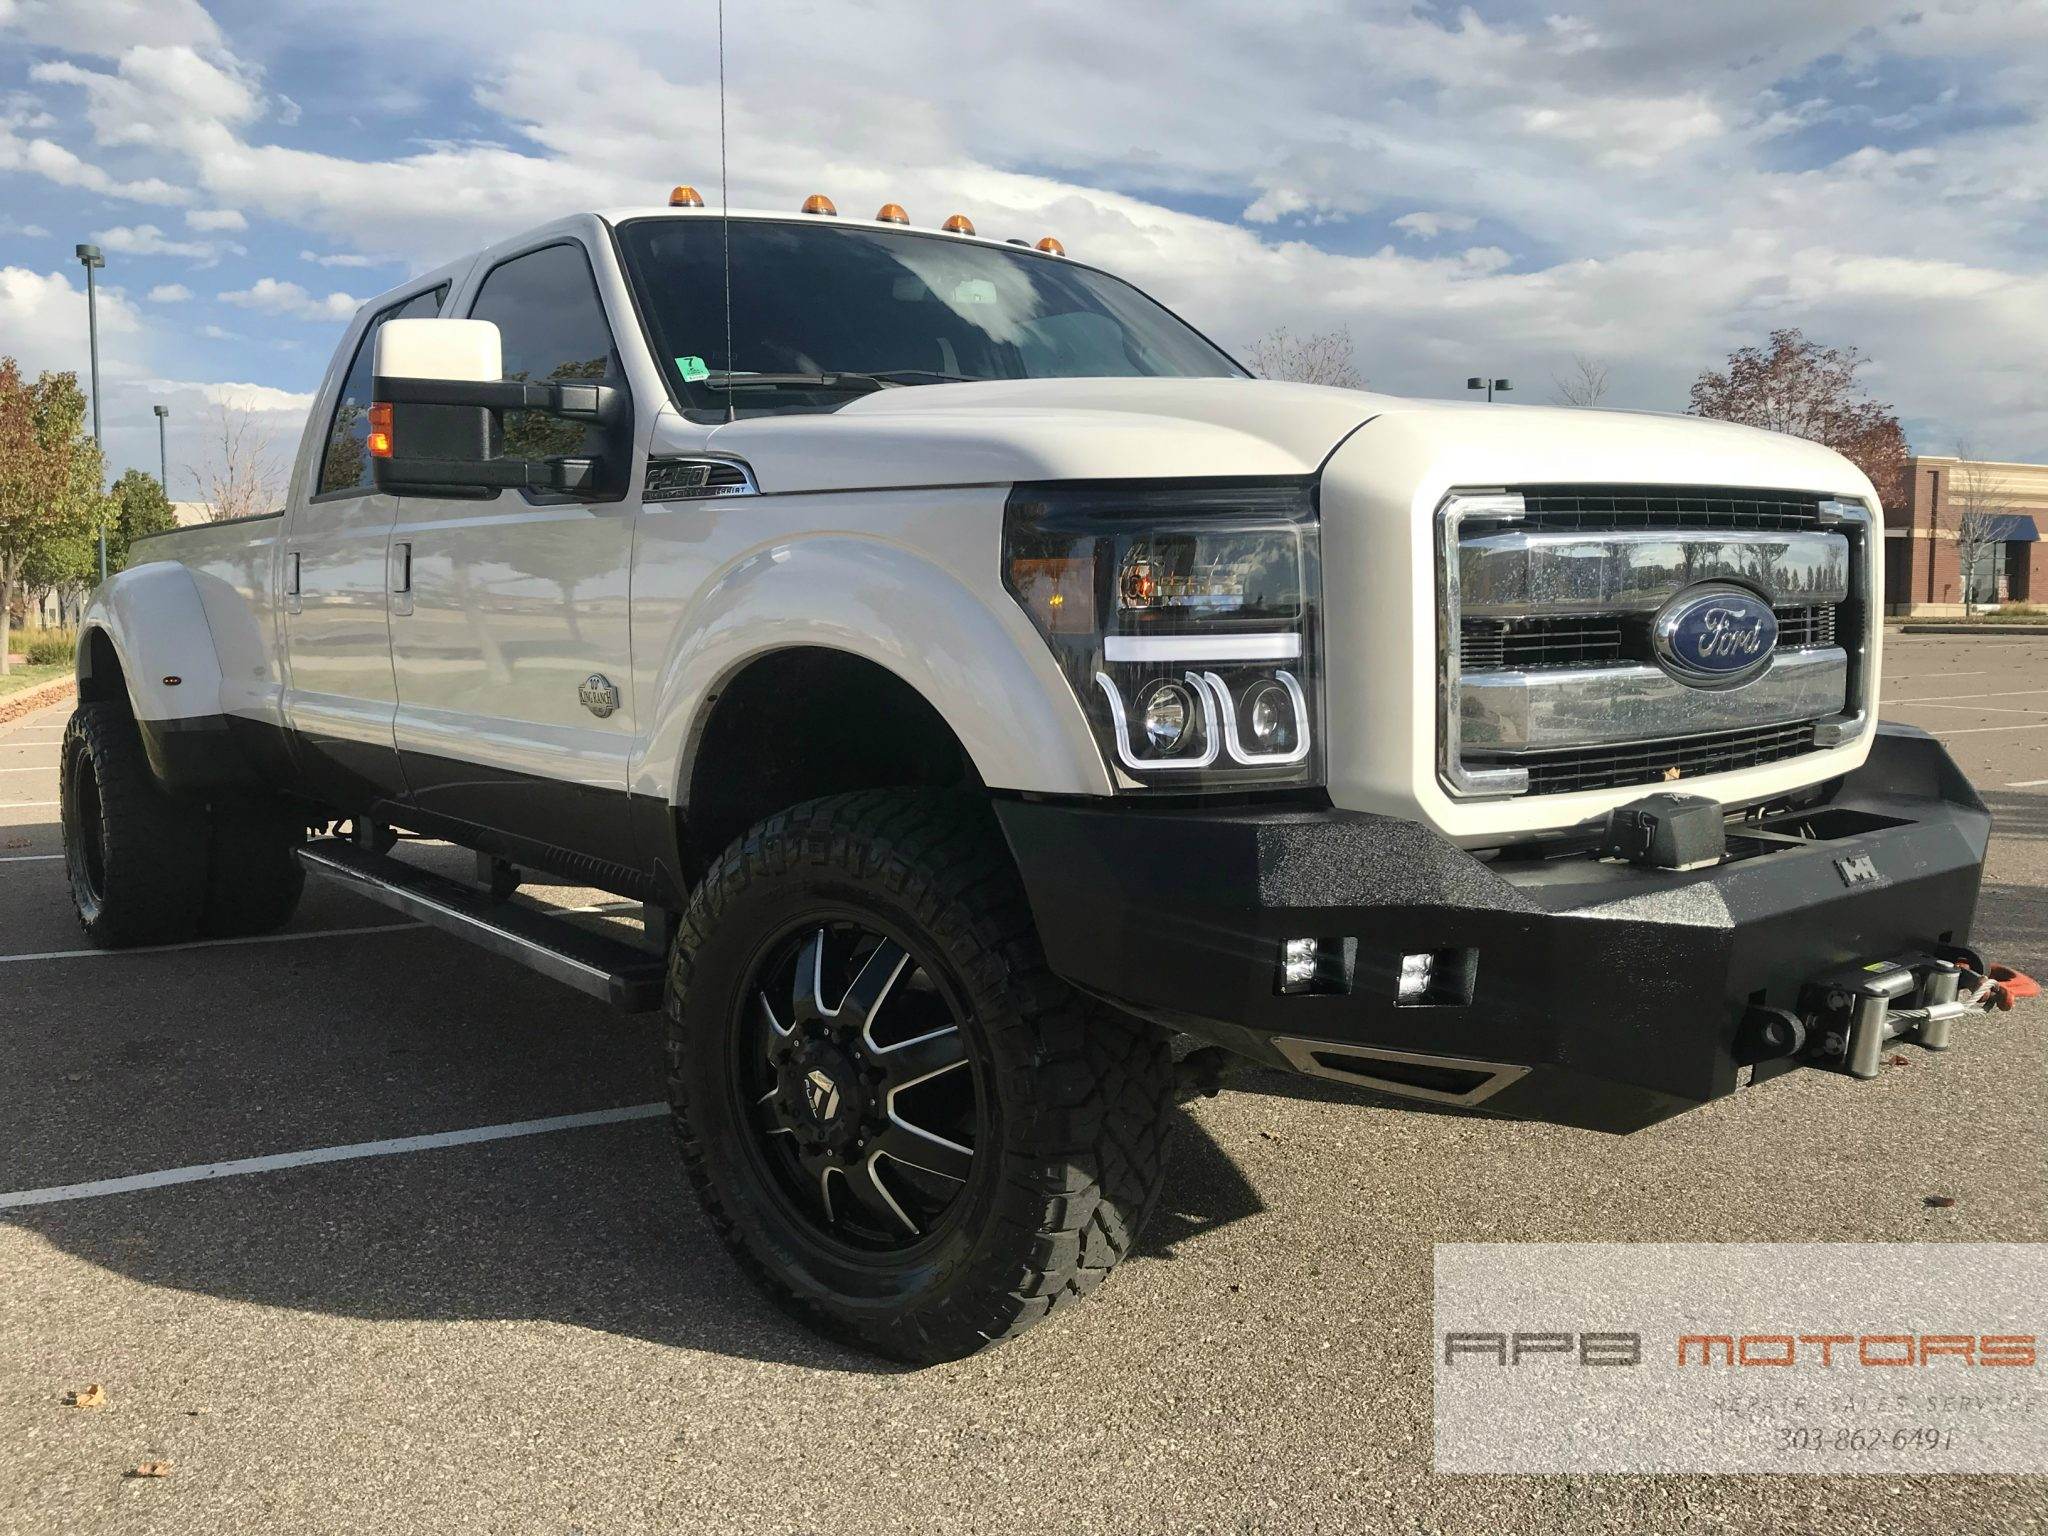 2016 Ford F-350 super duty 6.7l Diesel pickup truck King Ranch Mint – ***SOLD*** | Collision ...